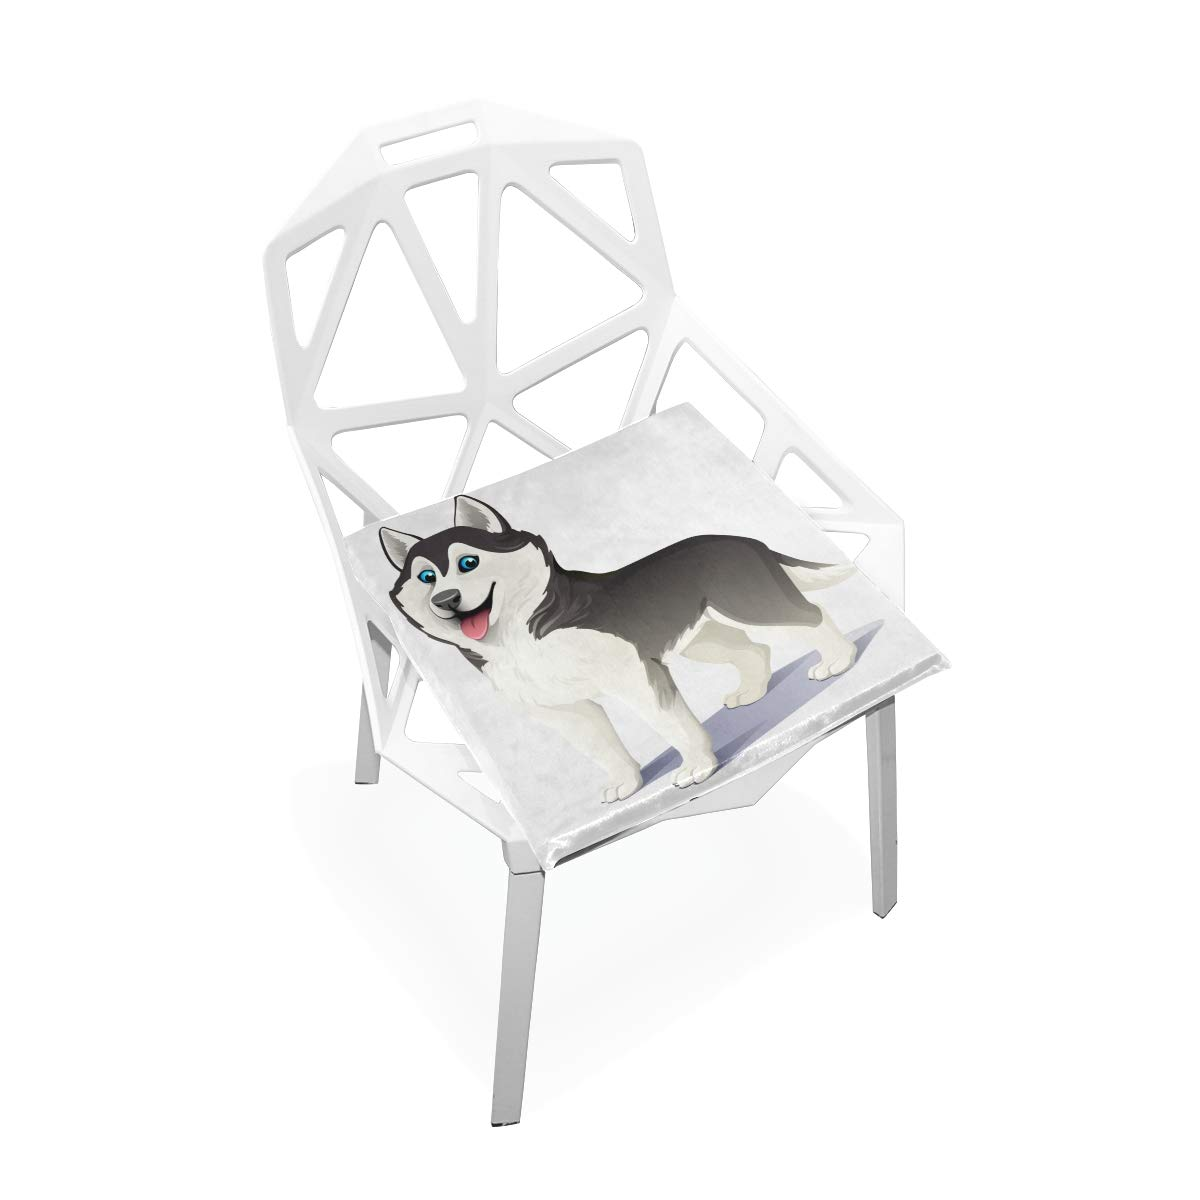 TSWEETHOME Comfort Memory Foam Square Chair Cushion Seat Cushion with Cartoon Animal Husky Dog Chair Pads for Floors Dining Office Chairs